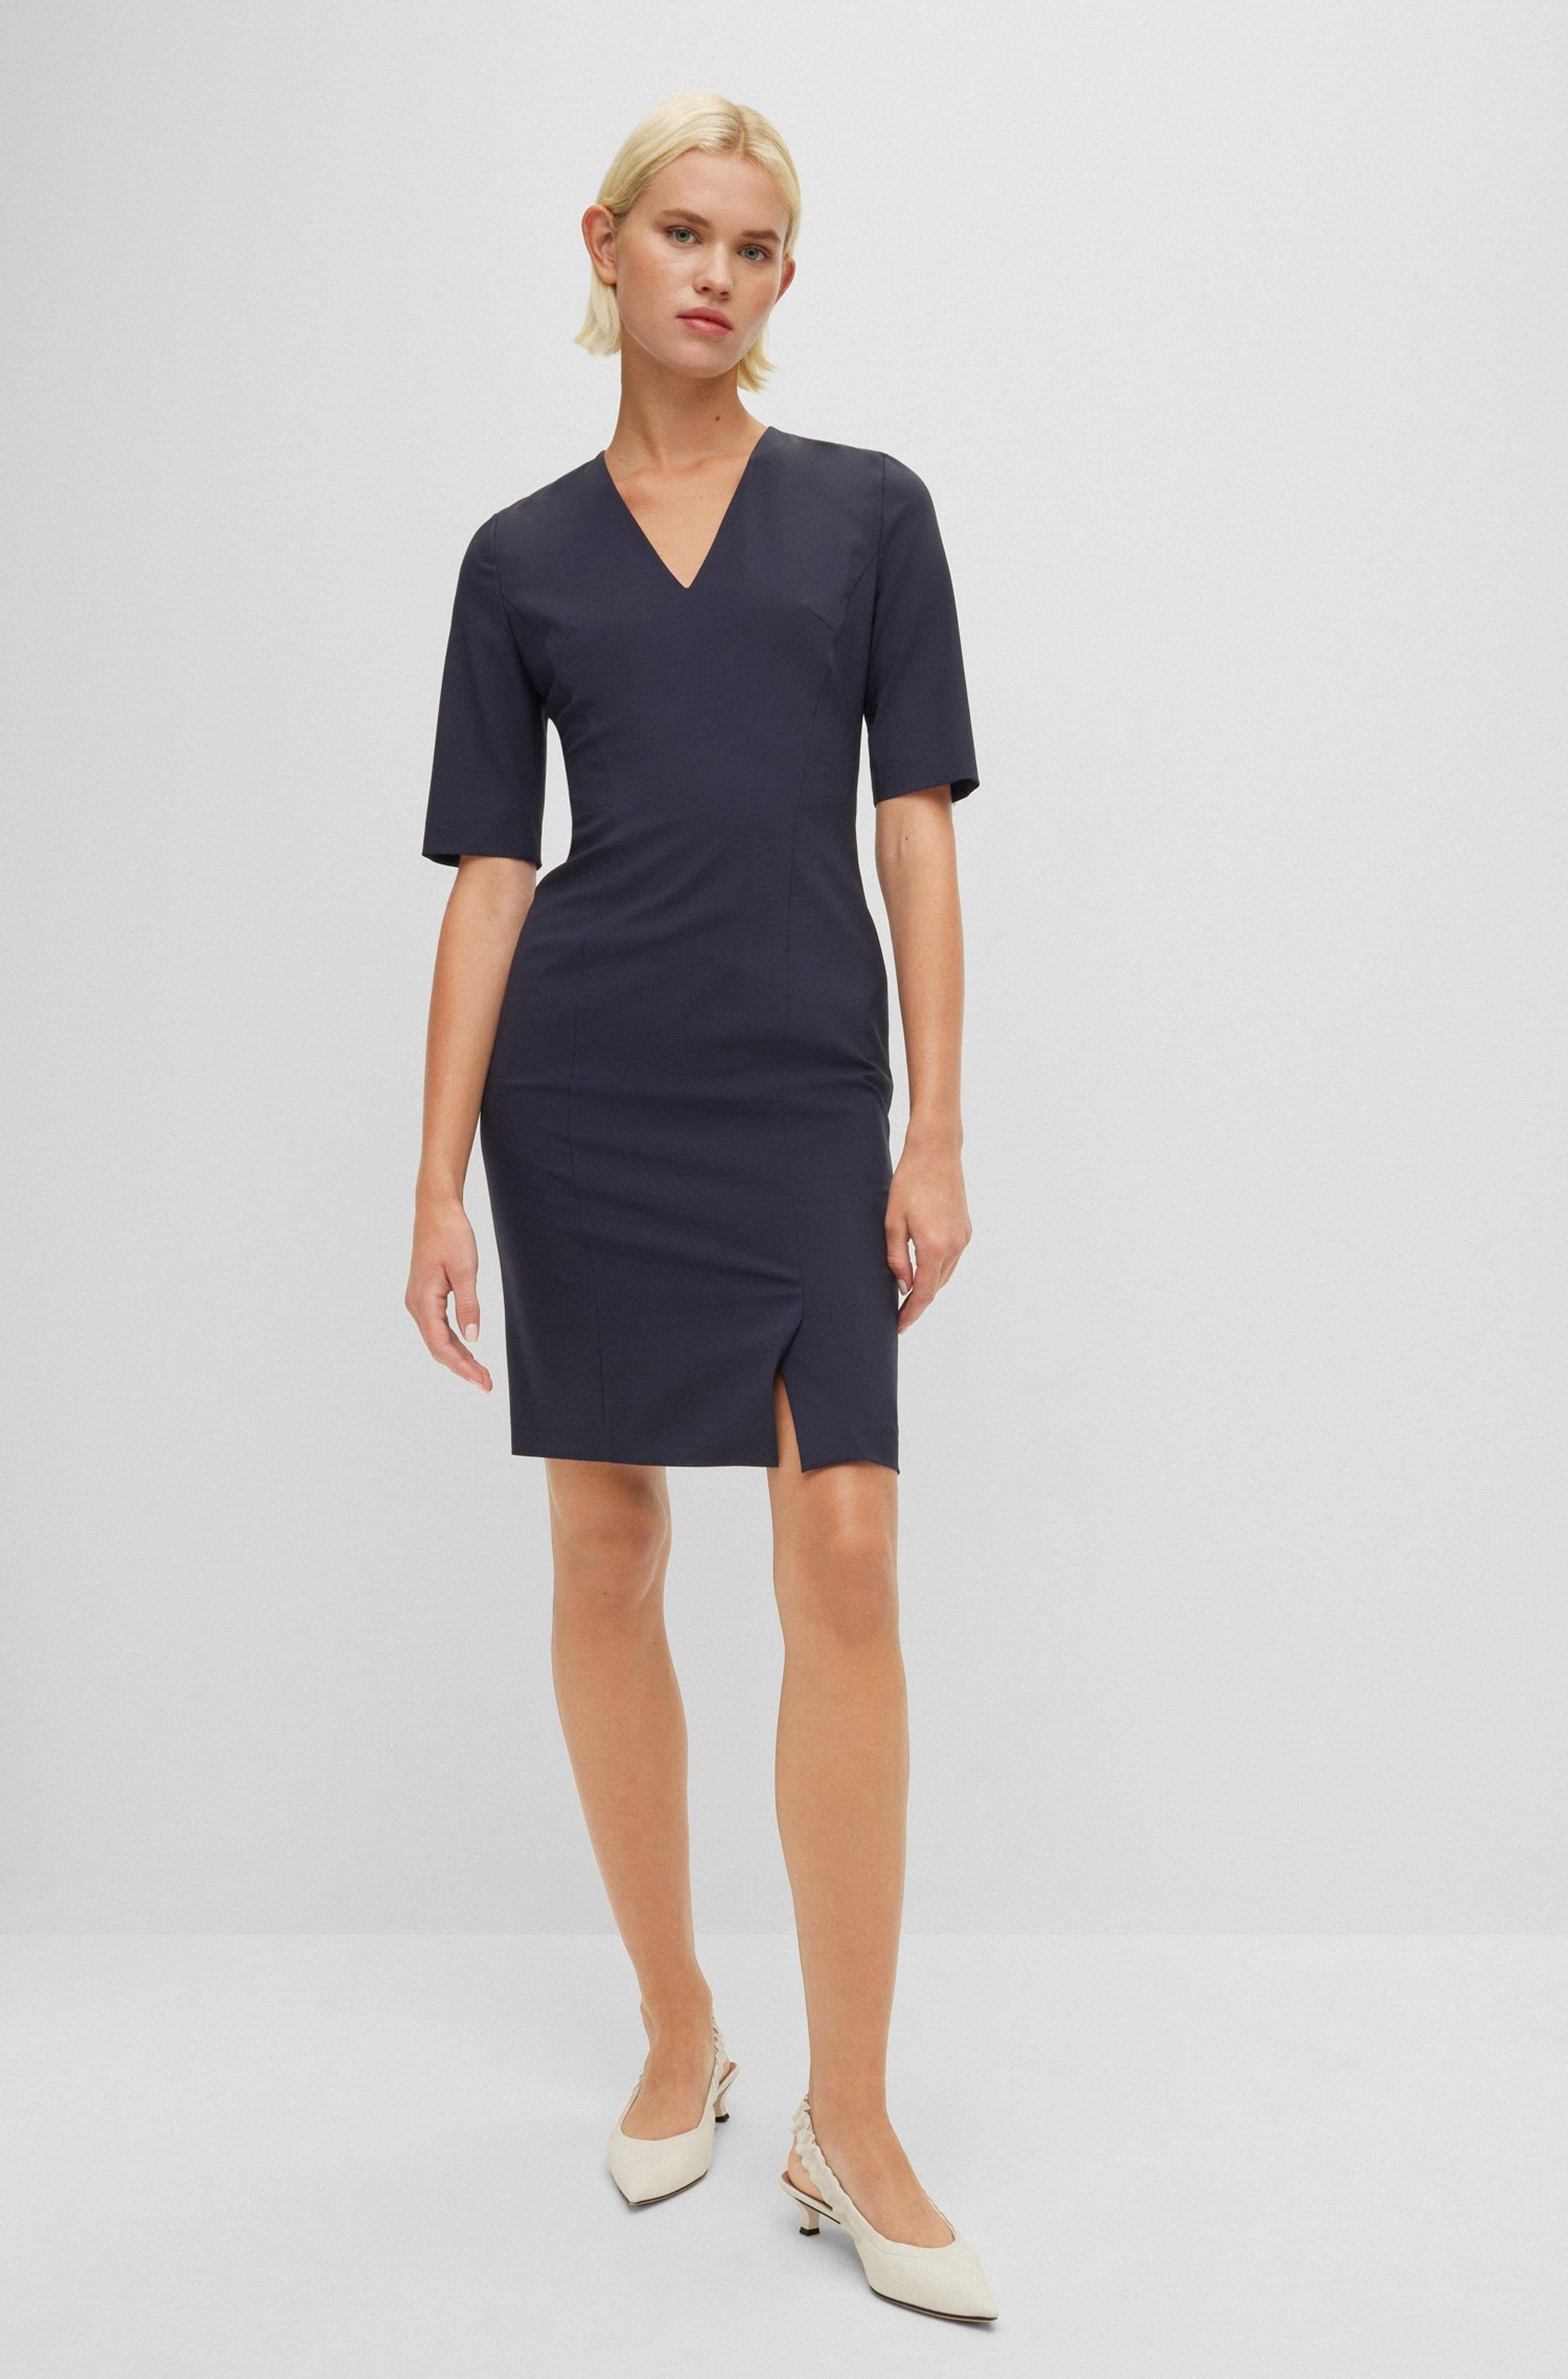 Short-sleeved dress in Italian stretch wool